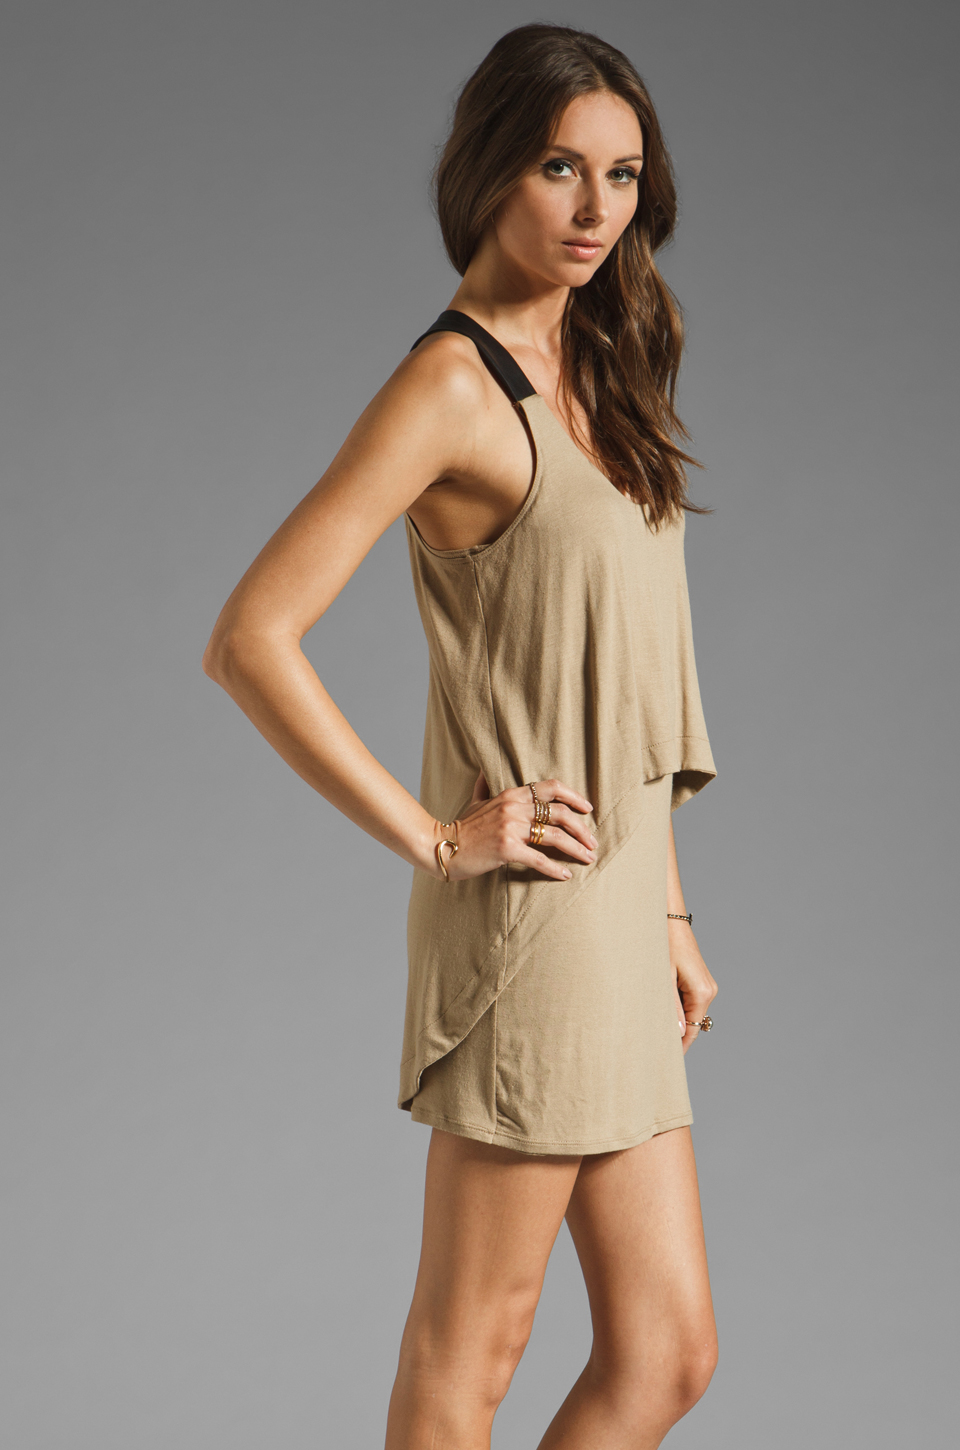 Mason by Michelle Mason Leather Strap Tank Dress in Camel